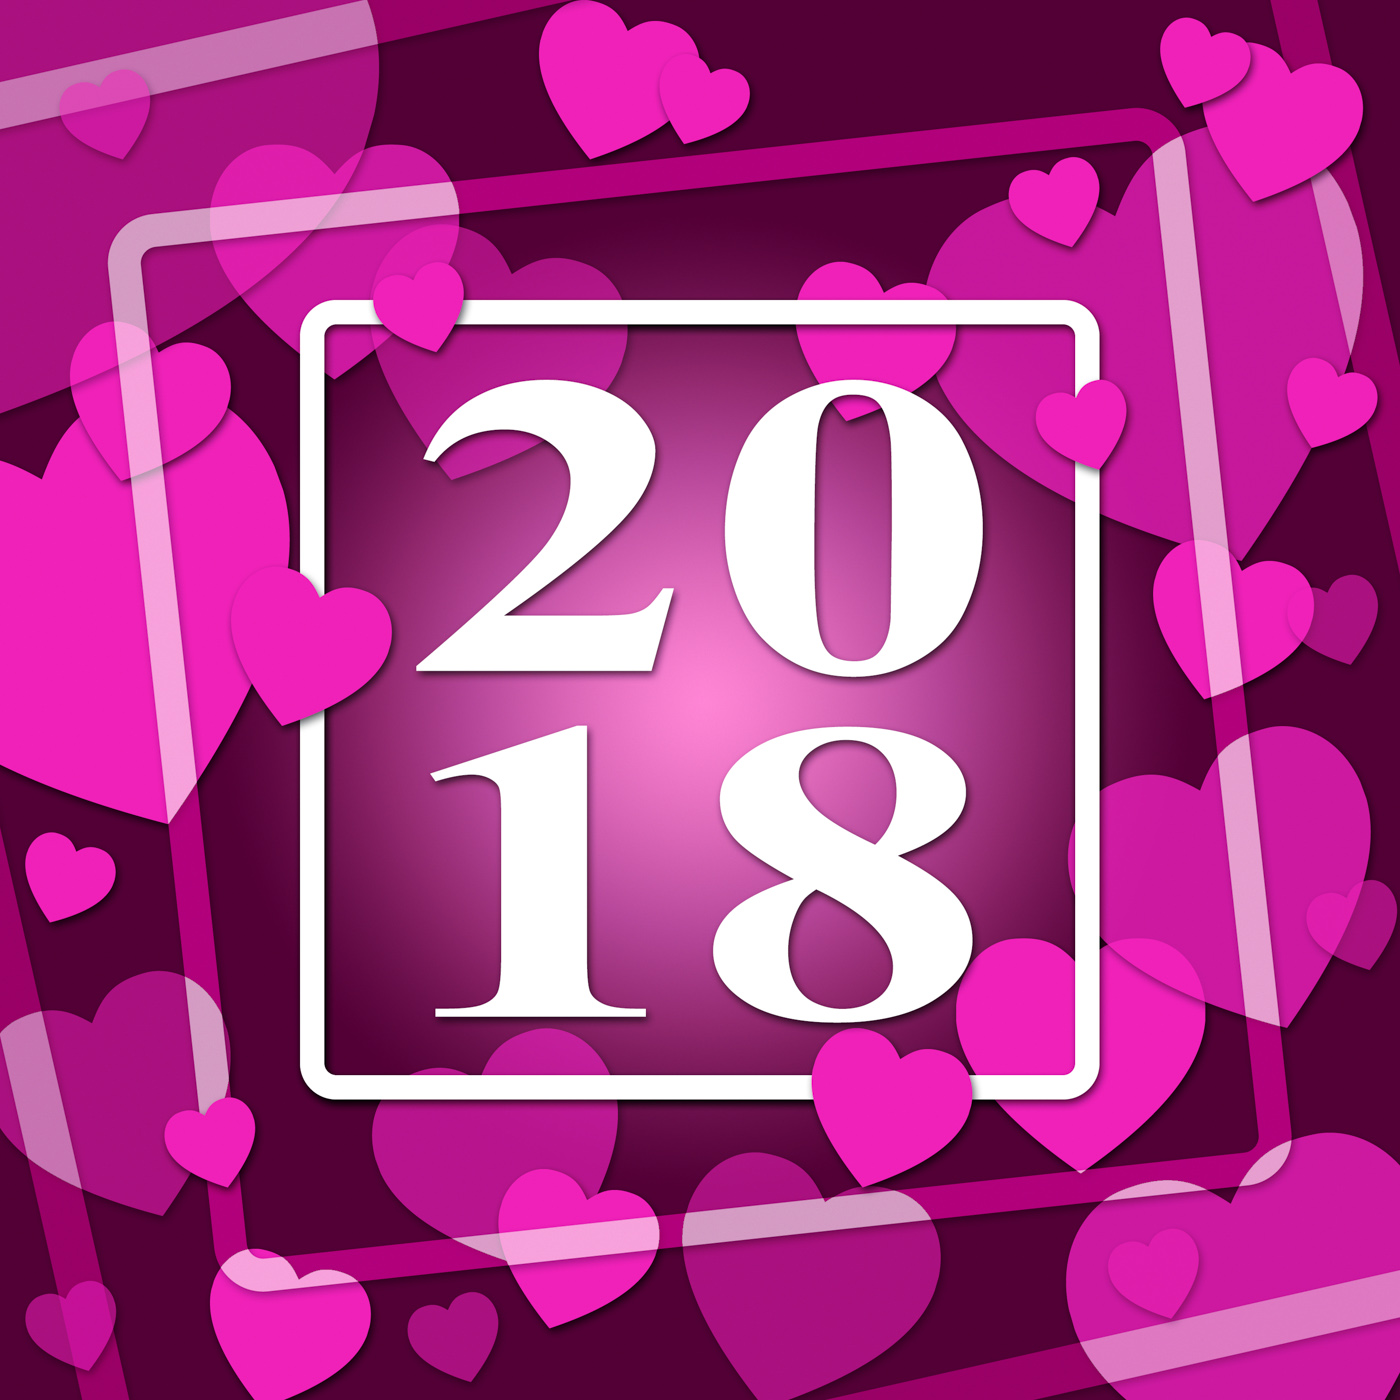 Two thousand eighteen indicates happy new year and annual photo